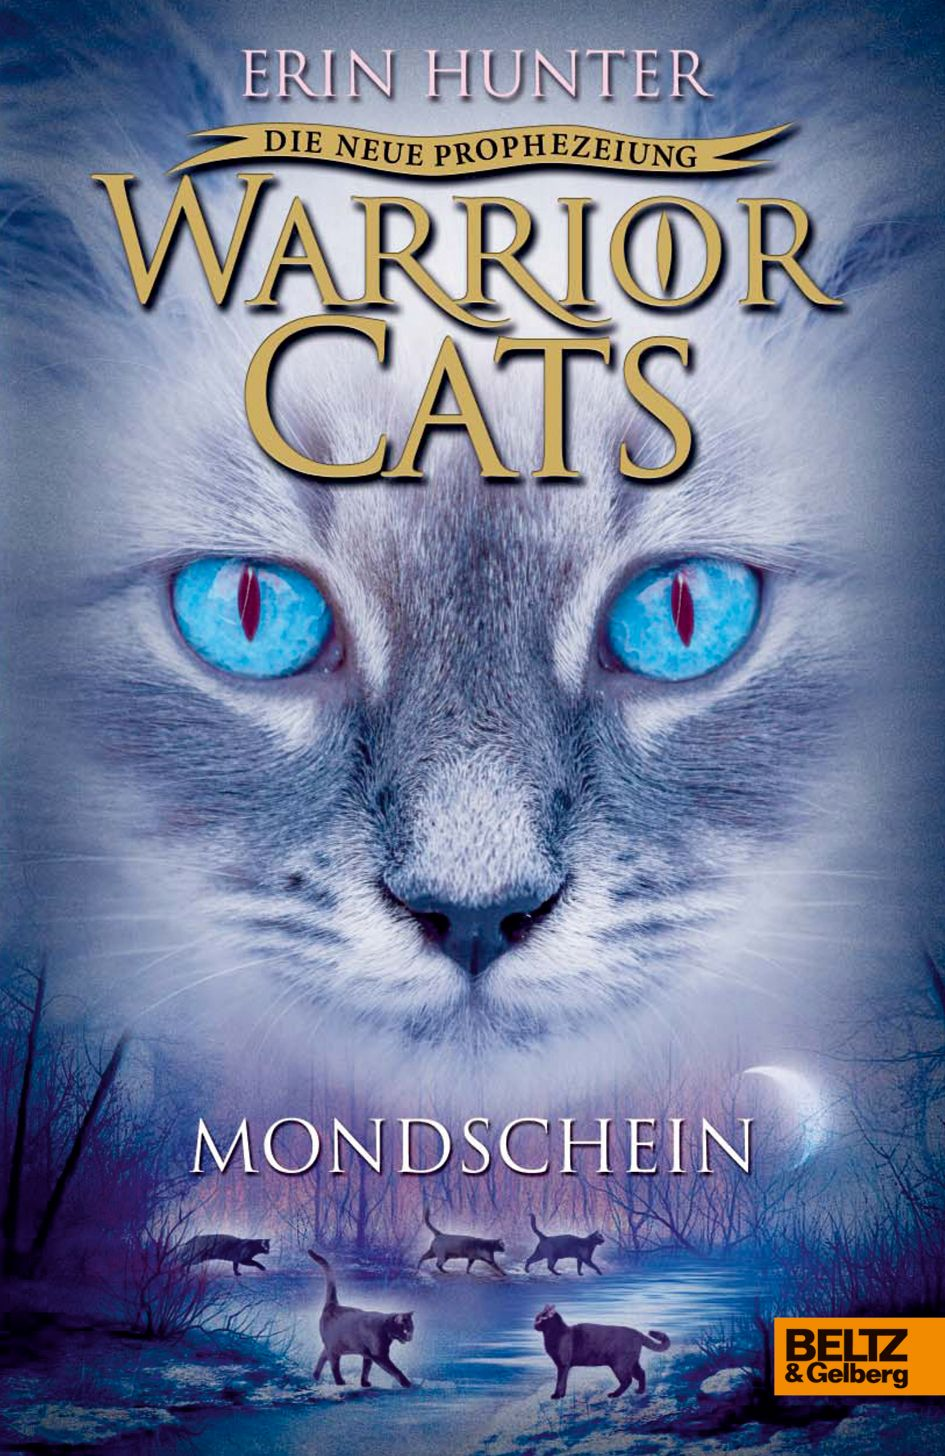 Warrior cats die neue prophezeiung mondschein band lovely